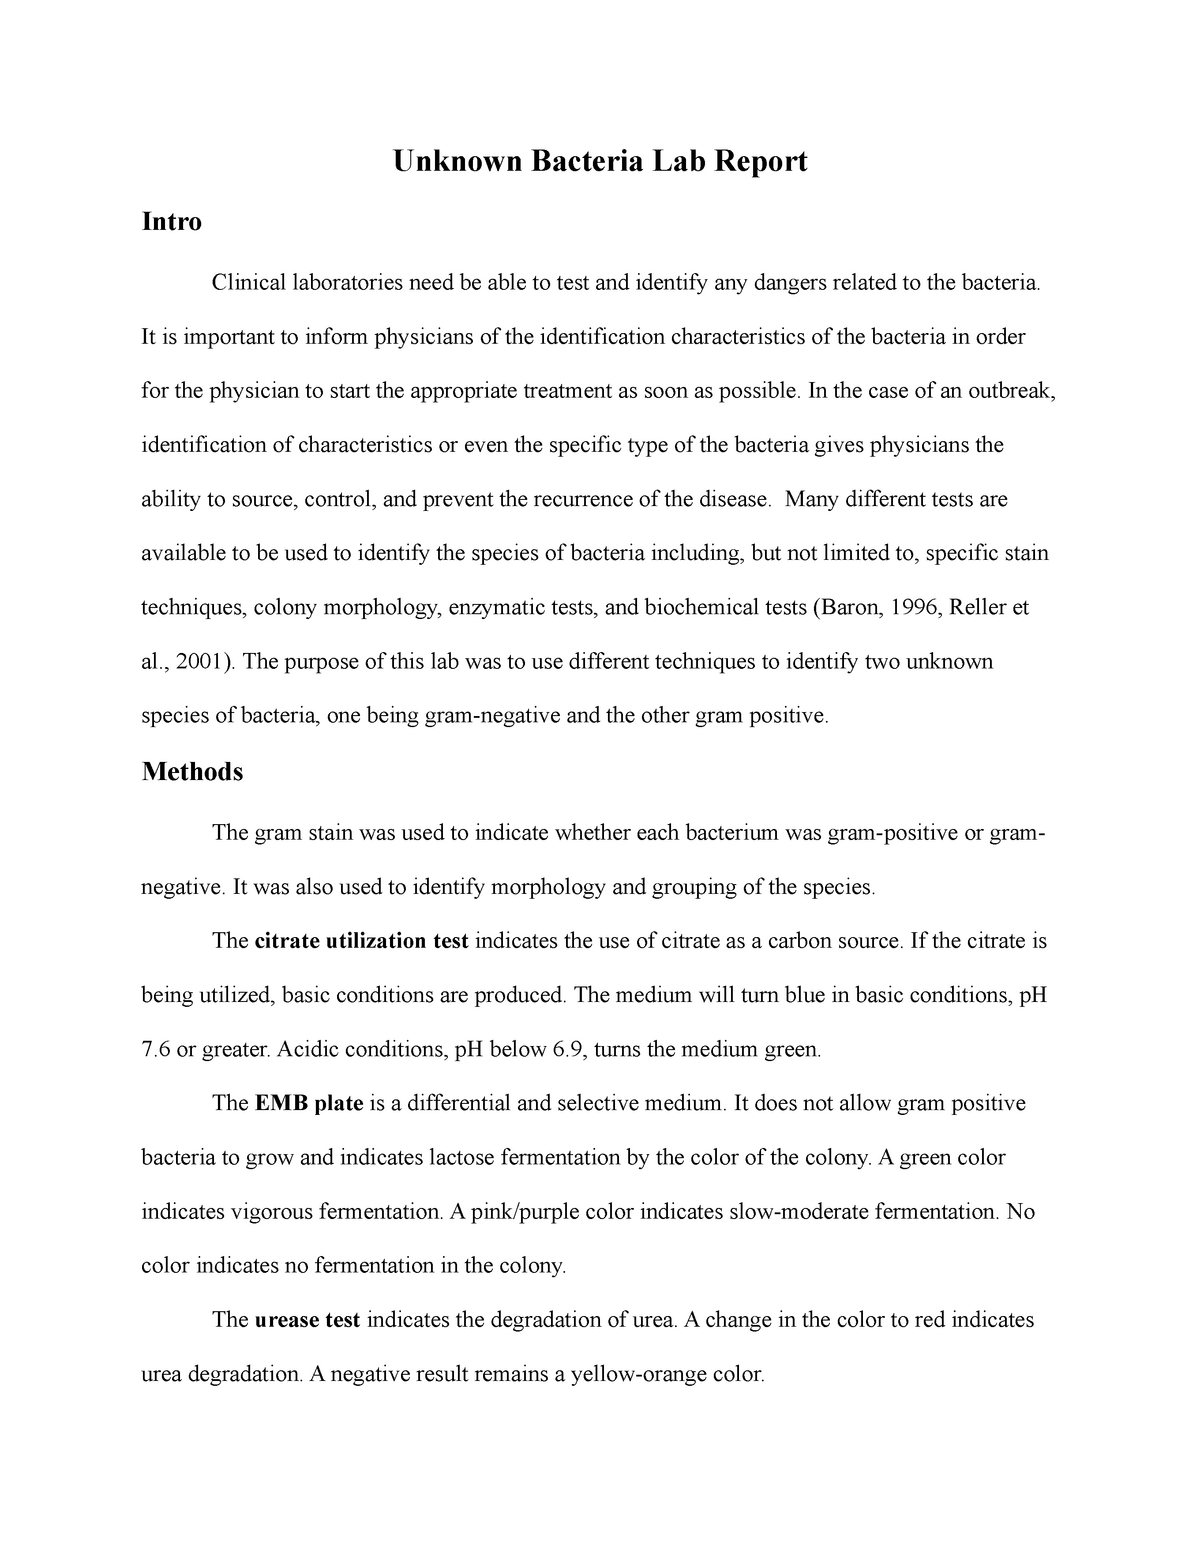 Unknown Bacteria Lab Report- Microbio - BIOL 455 - K-State